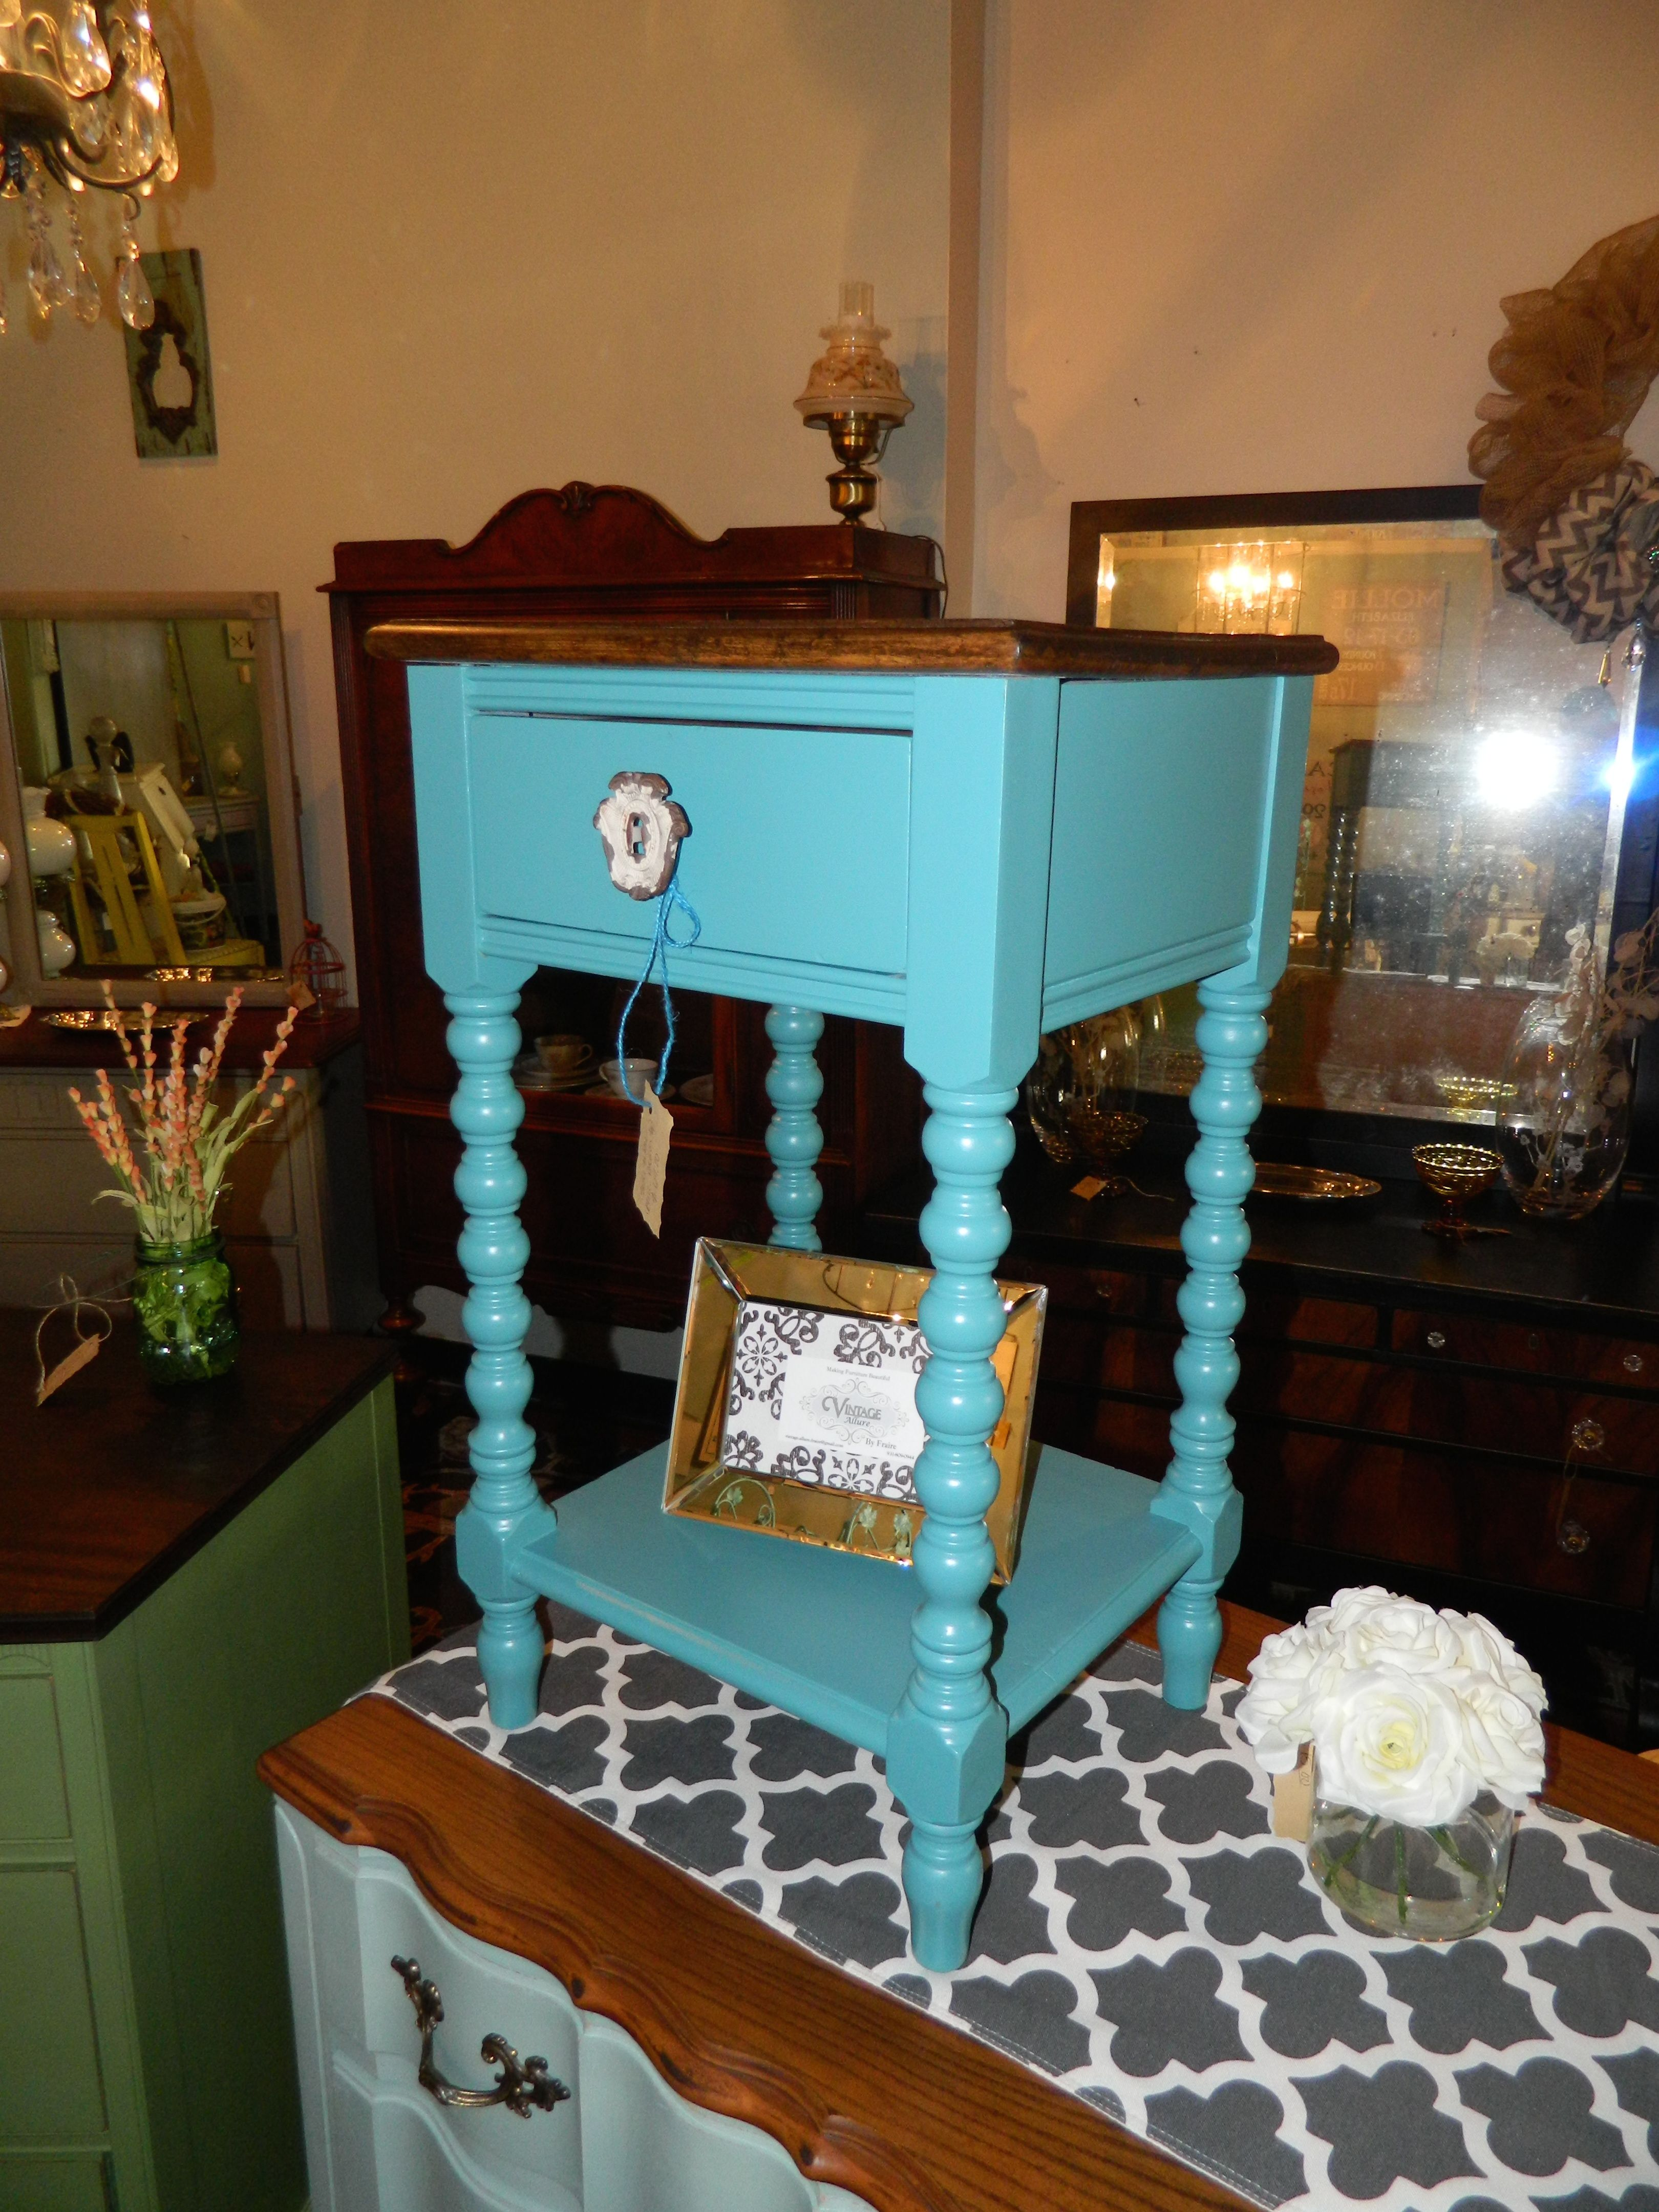 Bedside table solid wood spindle legs painted mayo teal by benjamin